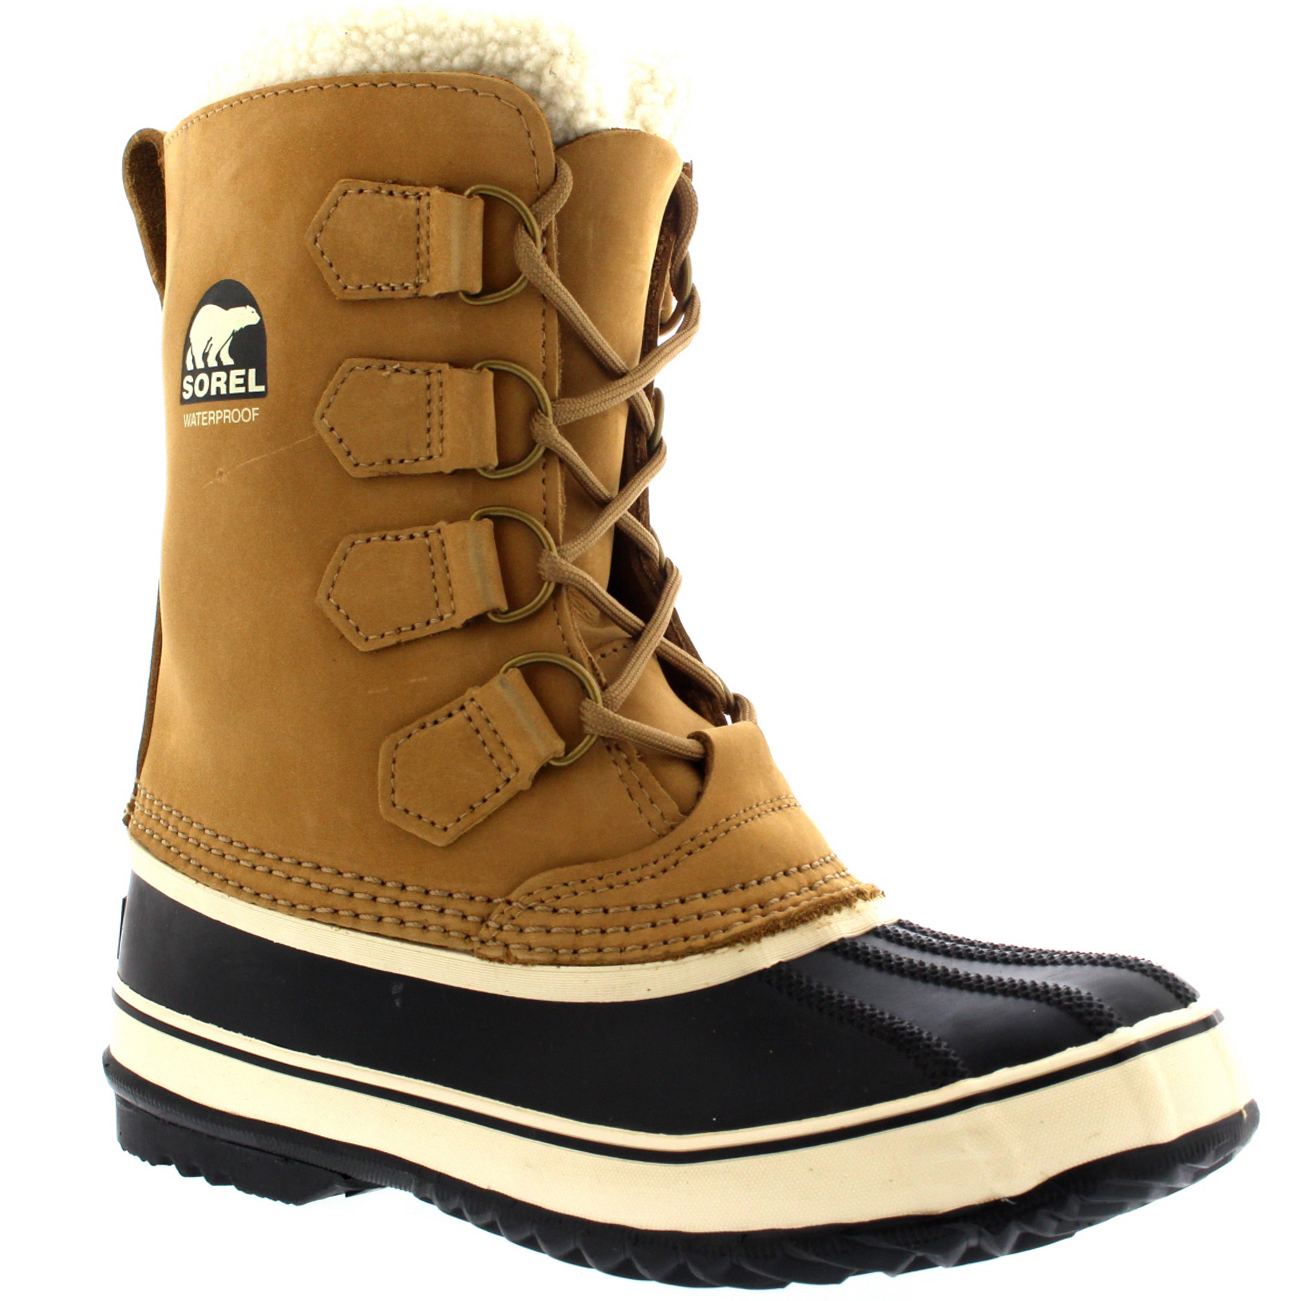 Awesome UGG Boots Amp Slippers  Mens Womens Amp Kids UGGS  Schuh